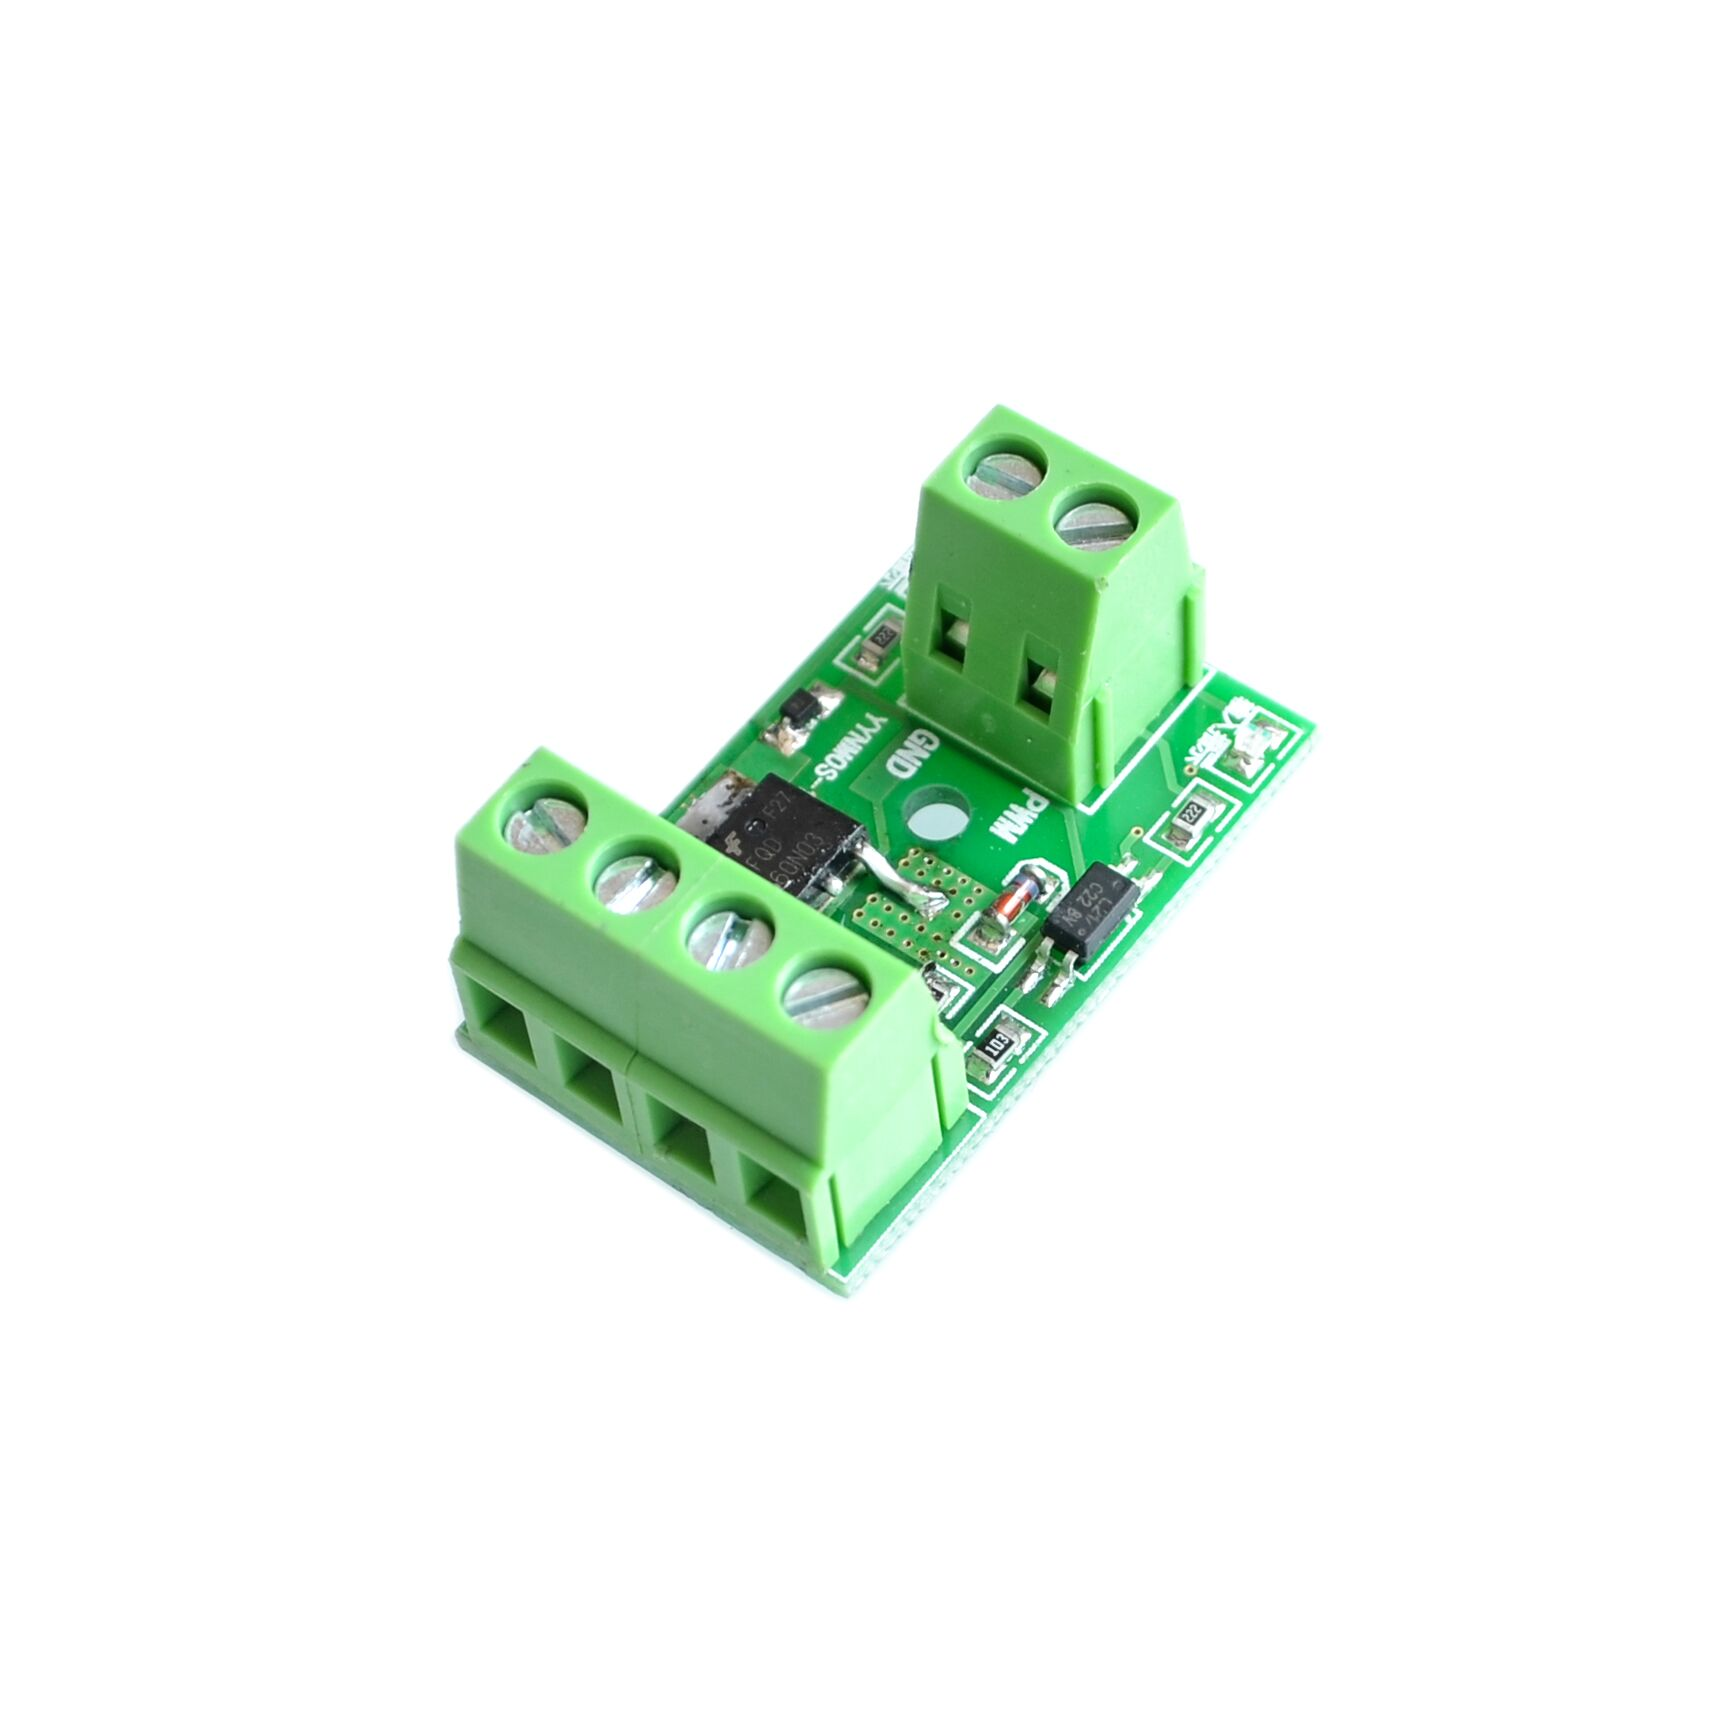 Mosfet Mos Optocoupler Isolation Driver Drive Control Pwm Board Regulator With A Field Effect Transistor Power Supply Circuits Module Trigger Switch 3